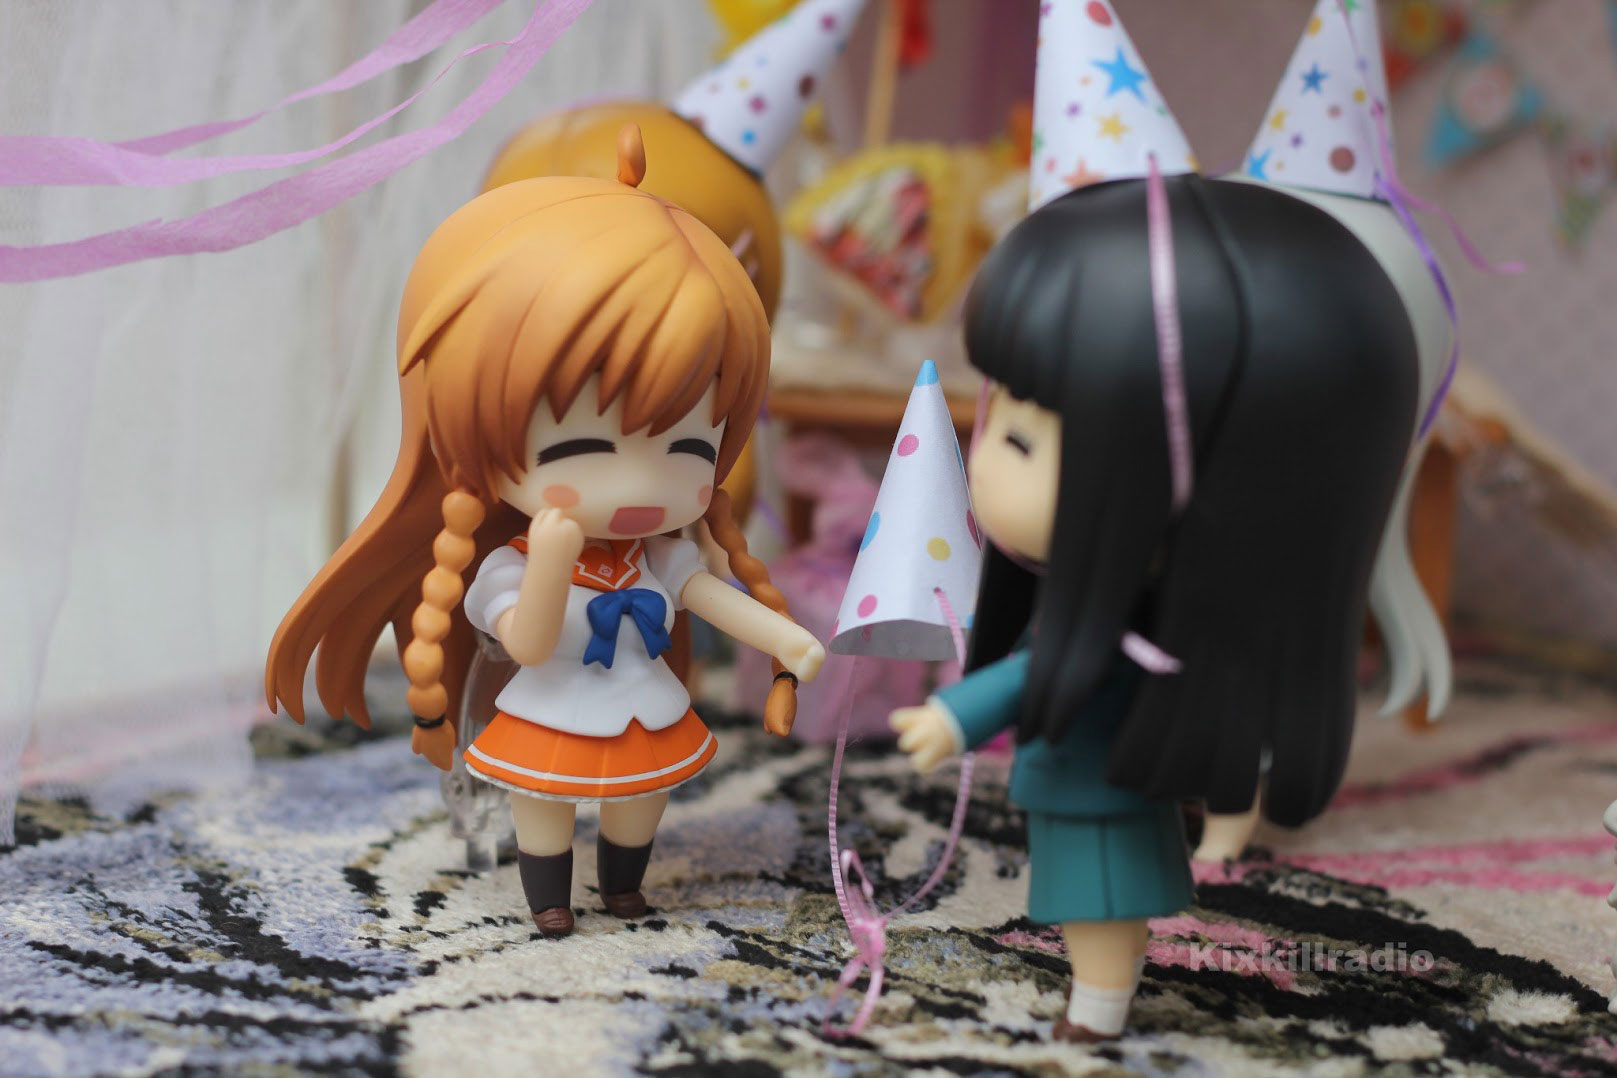 Nendoroid Mirai Suenega birthday party